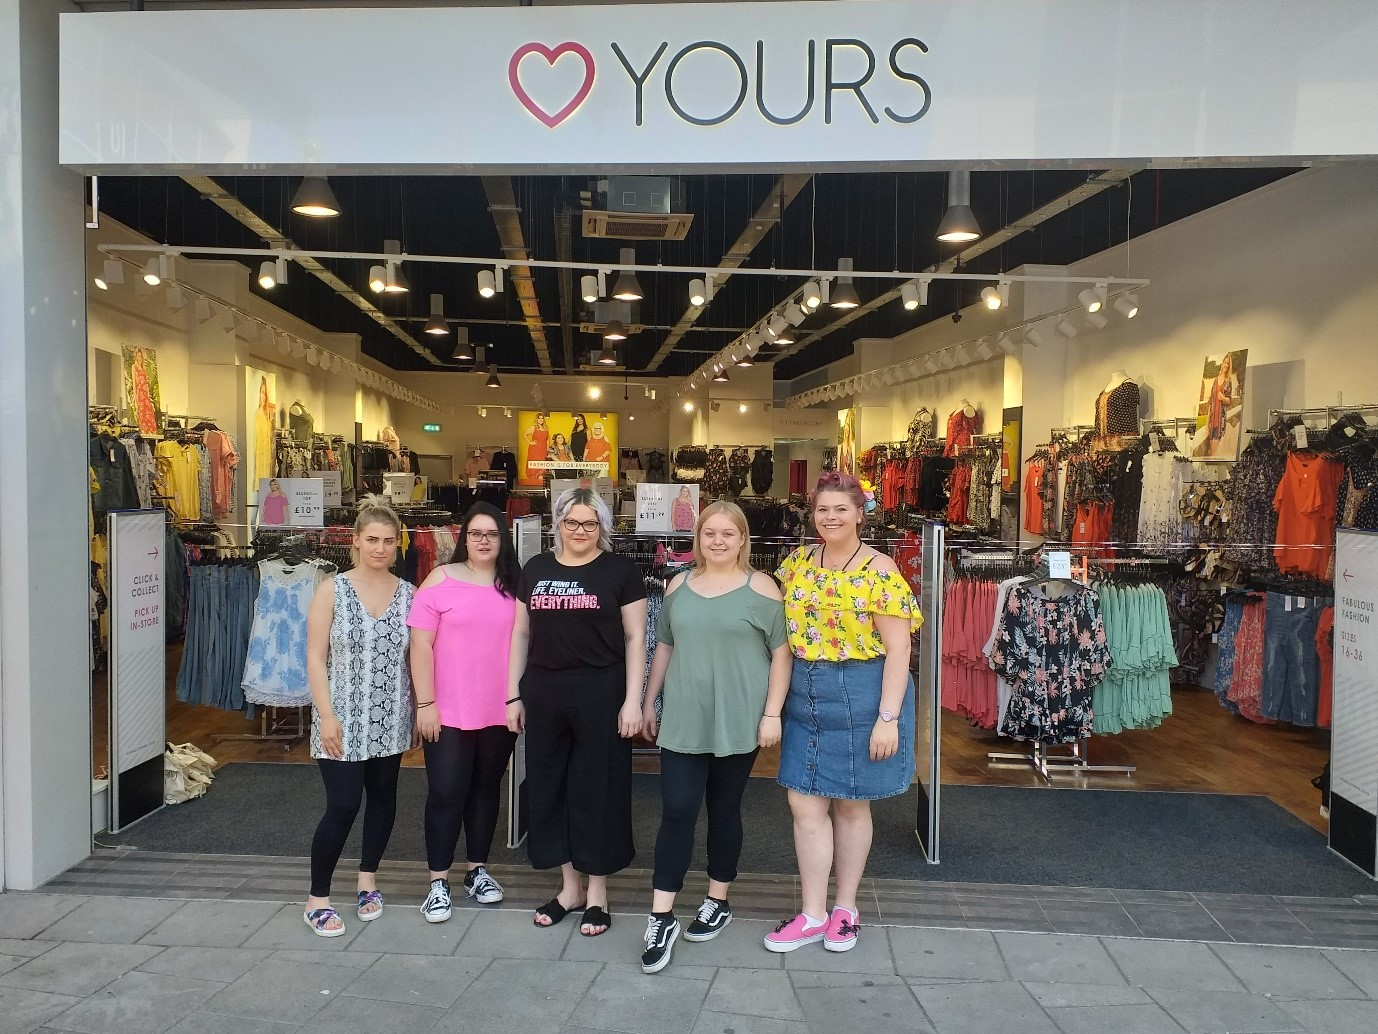 Yours opens in West Bromwich